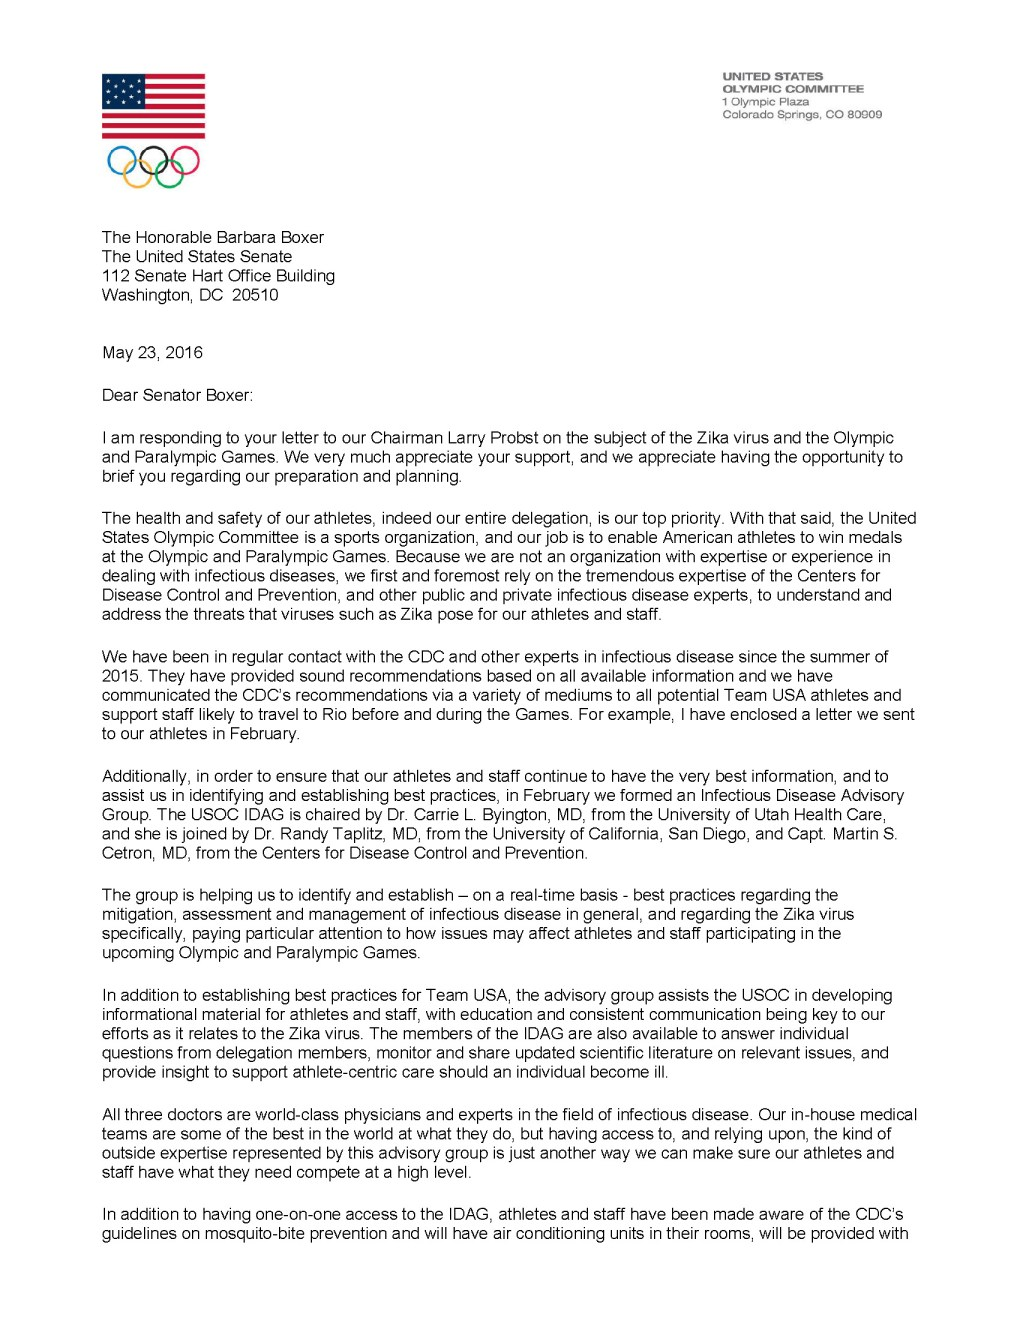 052316_Zika_Letter_Response (1)_Page_1